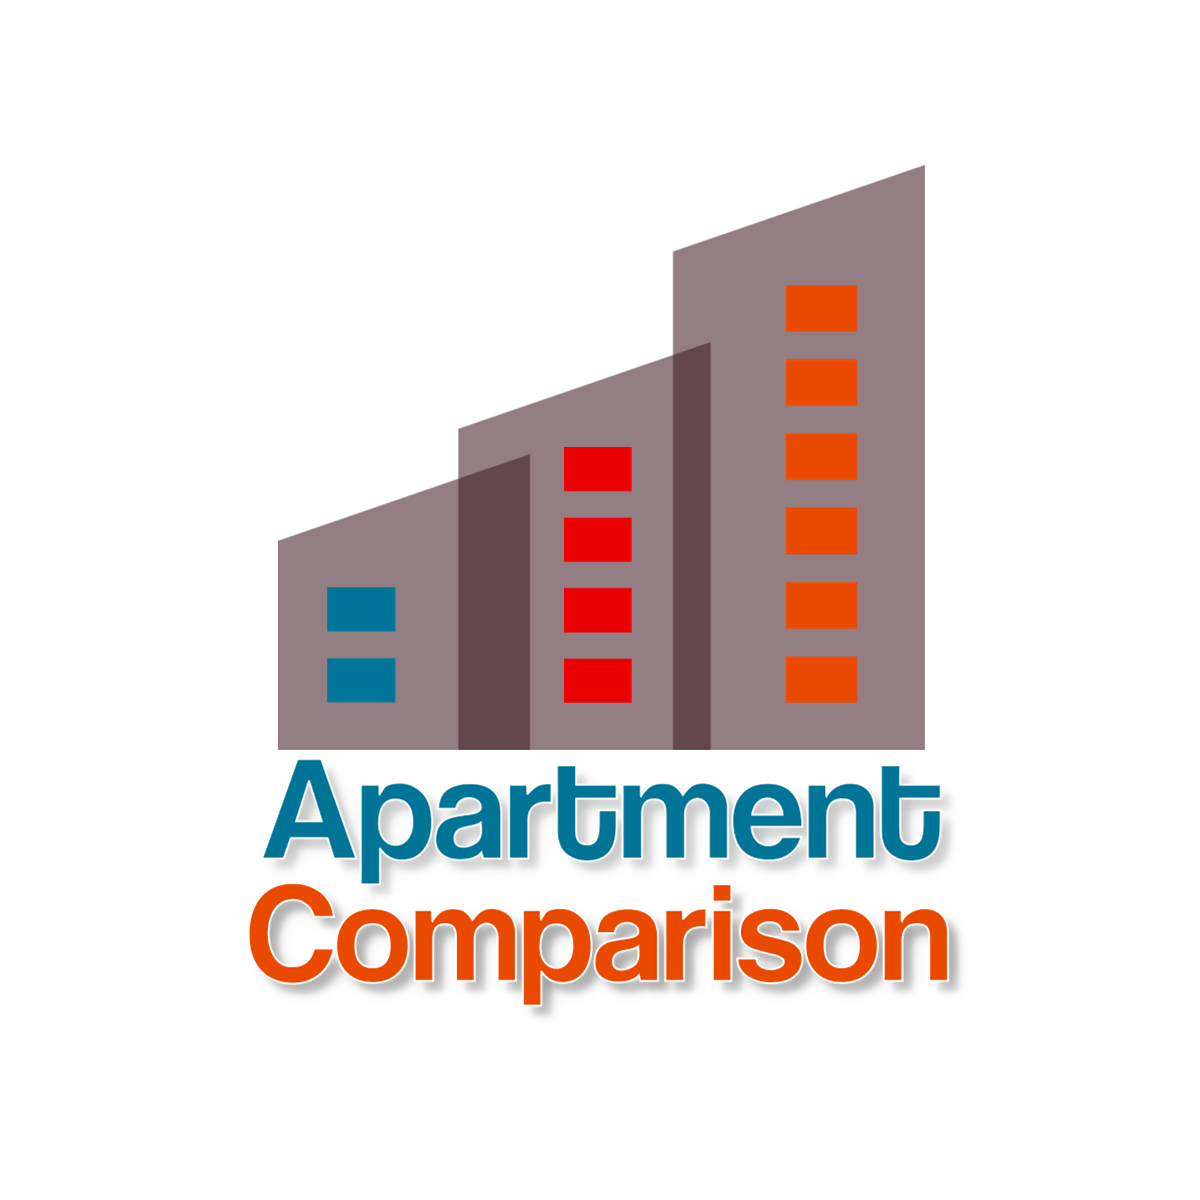 Excel Spreadsheets Help: Download the Apartment Comparison Android App